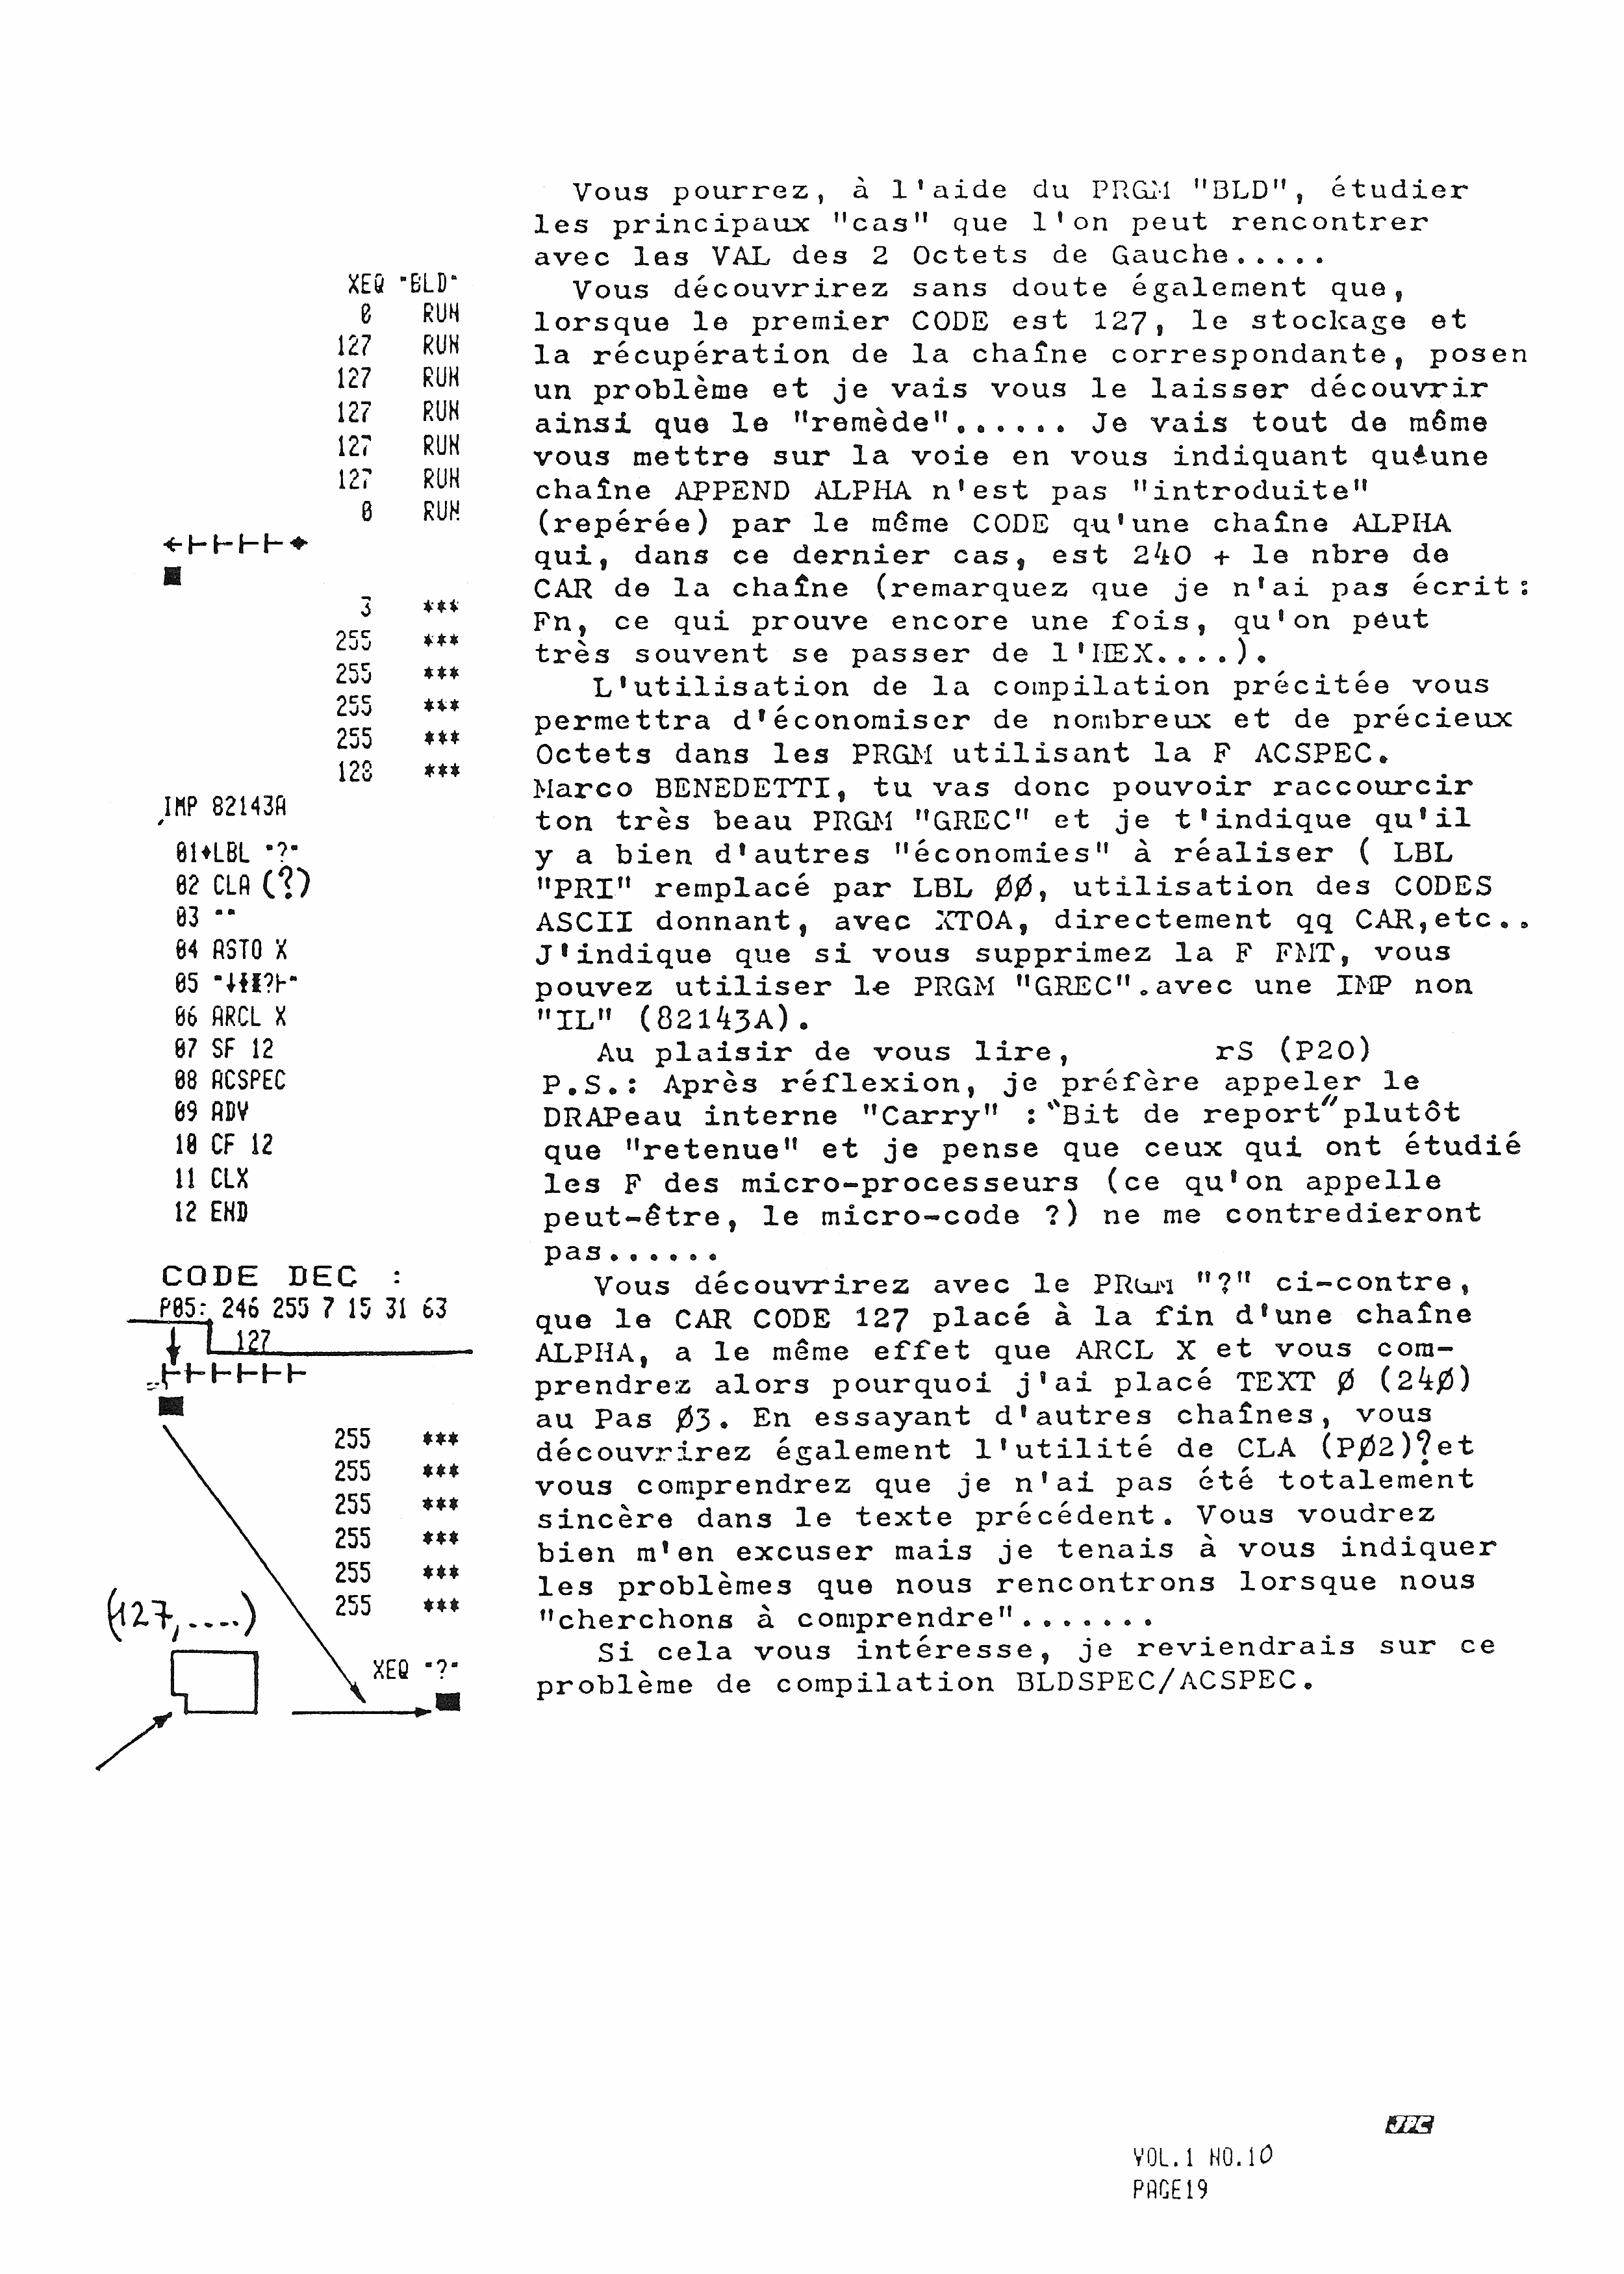 Jp-10-page-19-1000